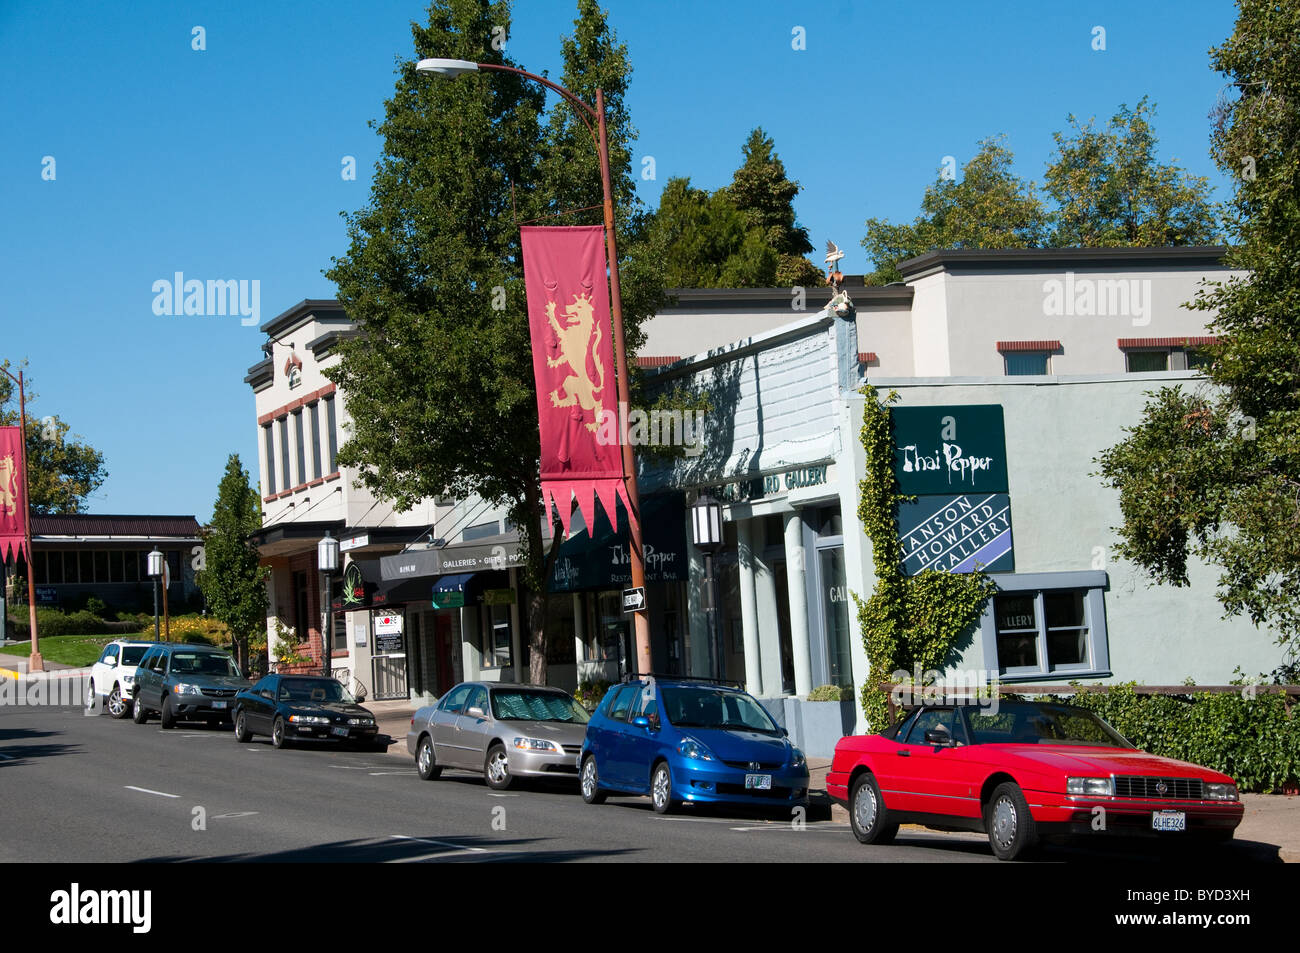 Downtown Ashland Oregon ,  banners for Shakespeare Festival.  Photo  # oregon-ashland-oregon105641 - Stock Image